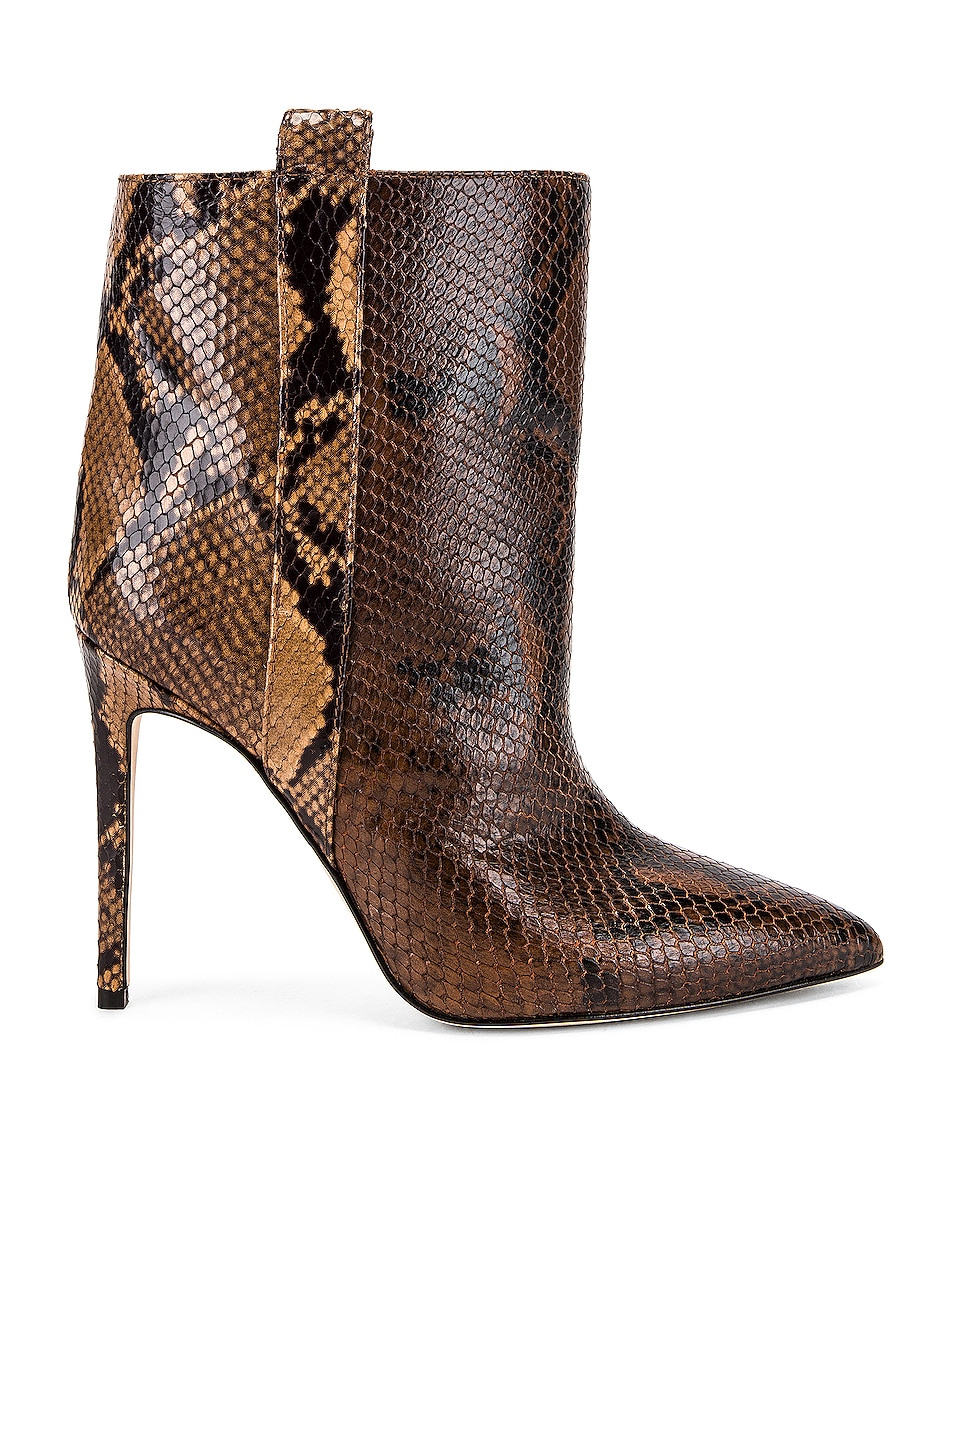 Image 1 of Paris Texas Snake Print Ankle Boot in Brown & Camel